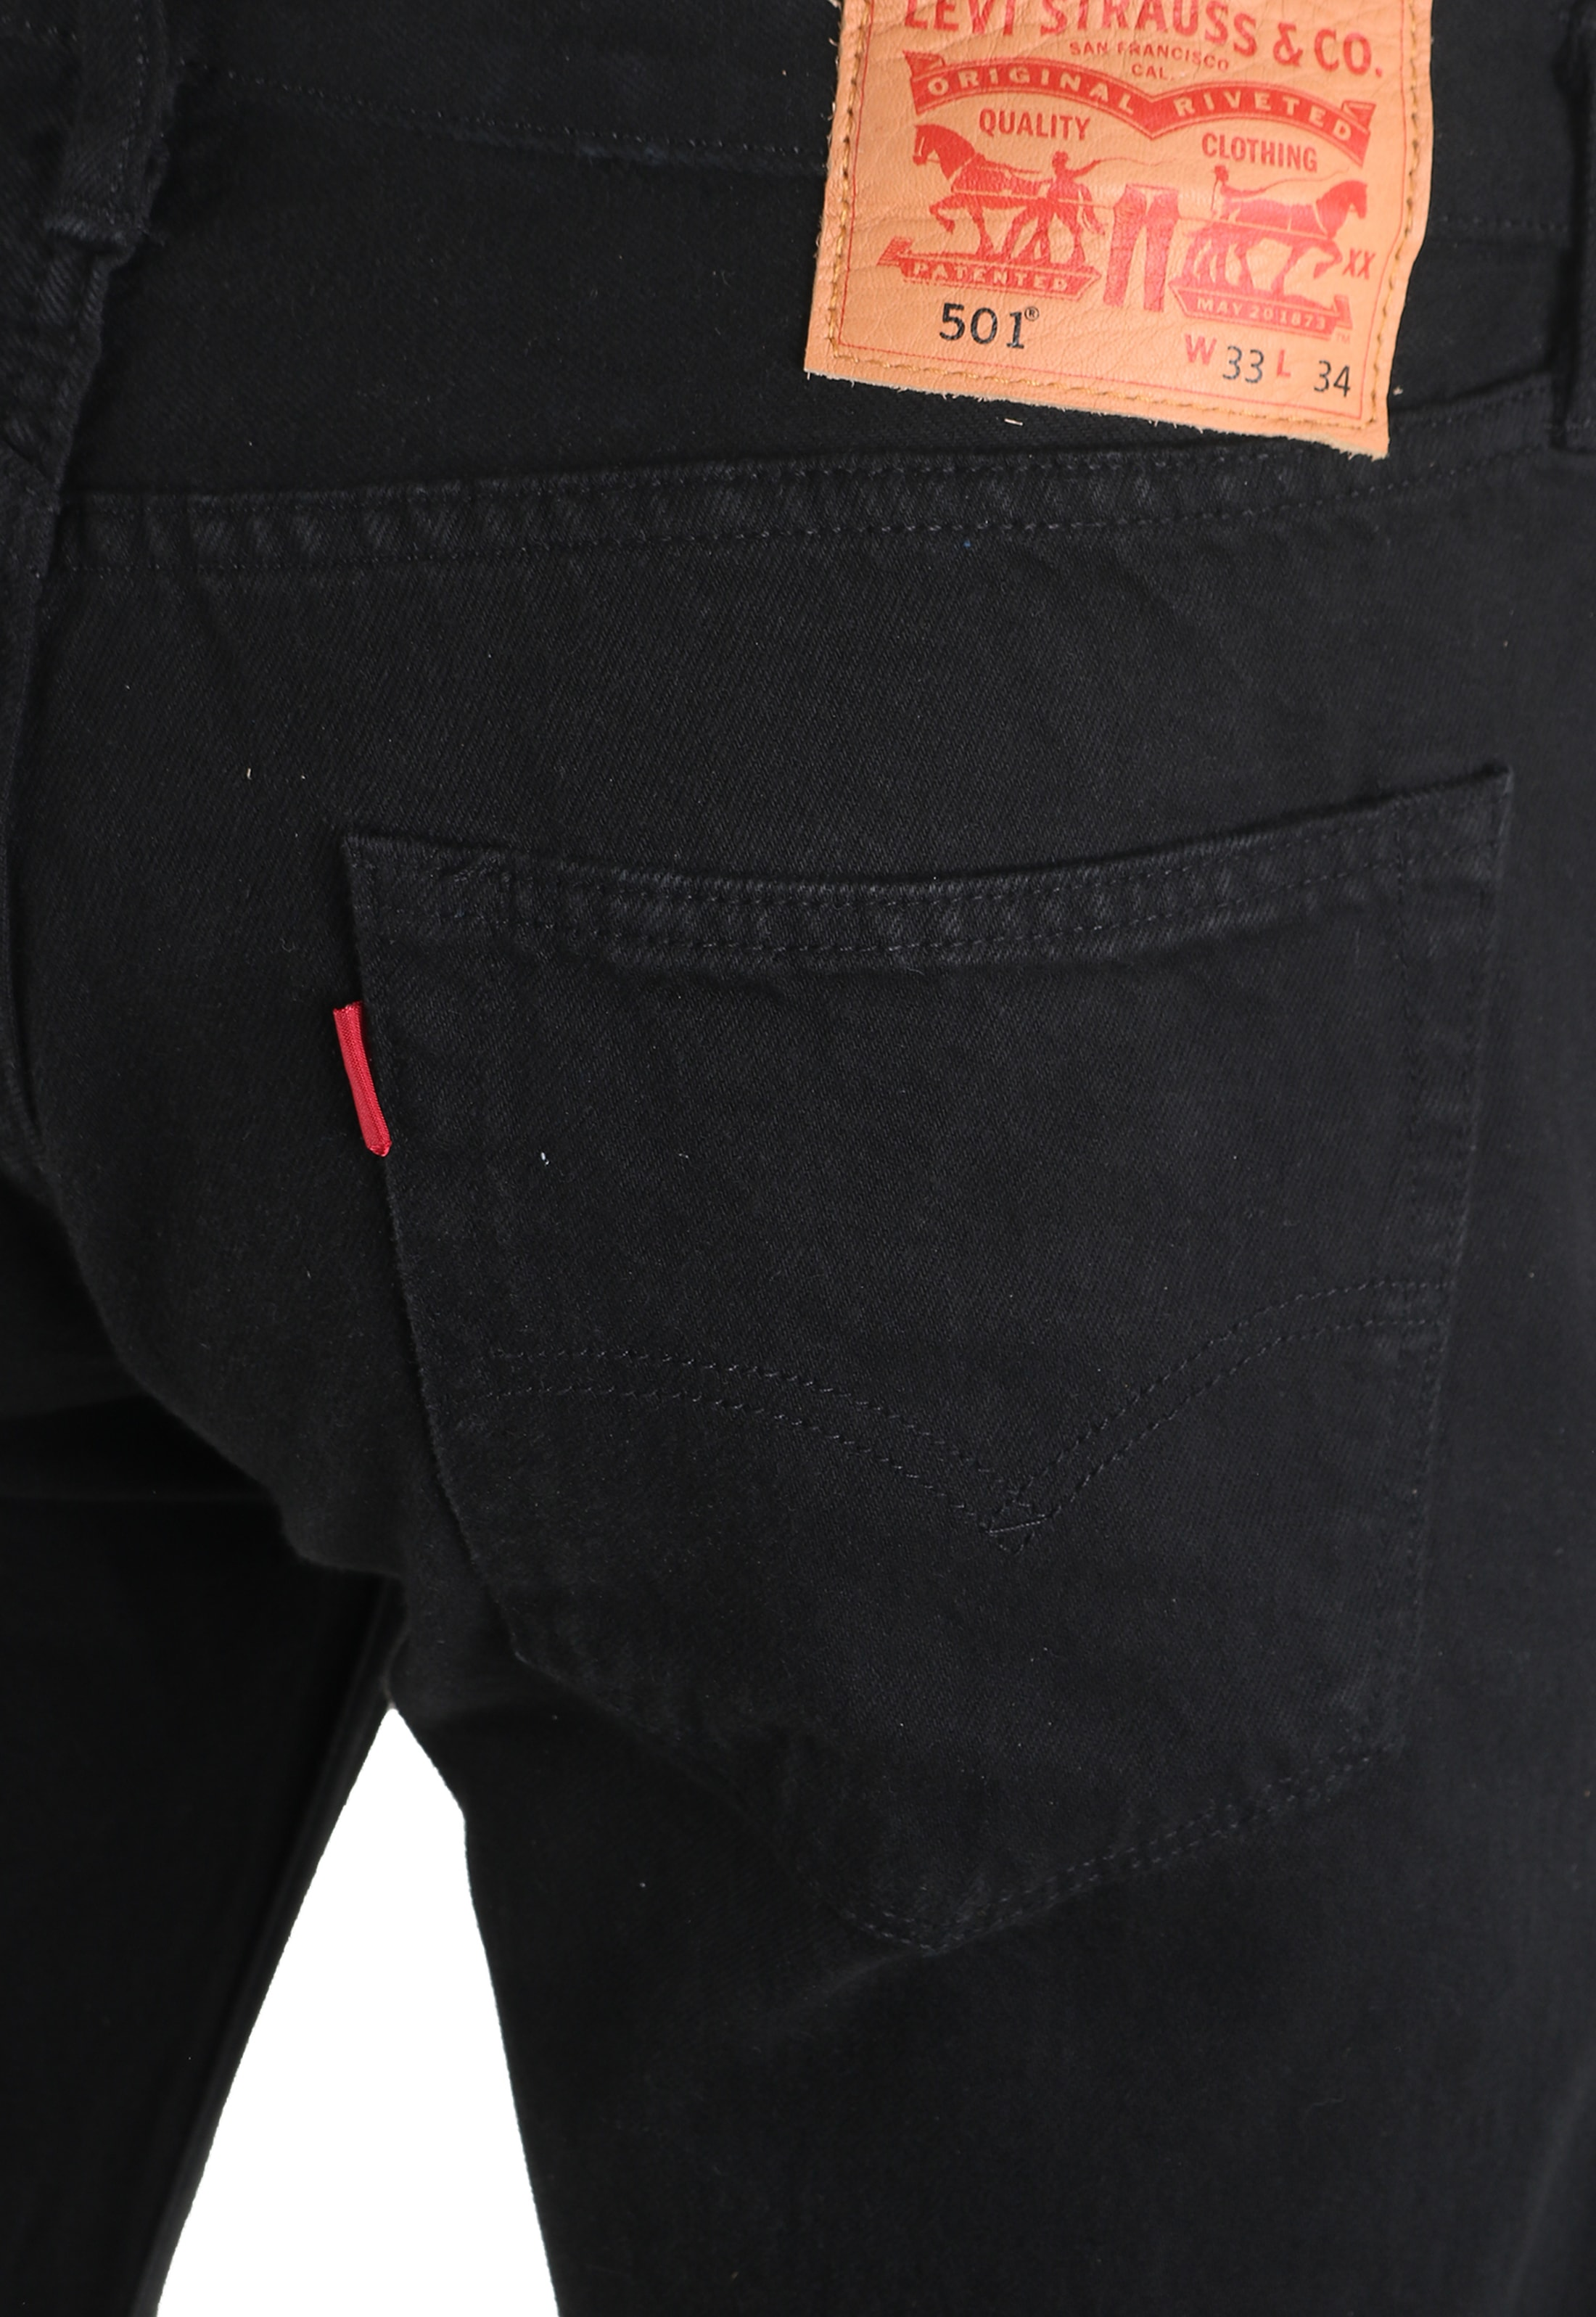 Levi's 501 Jeans Original Fit Black 0165 foto 4